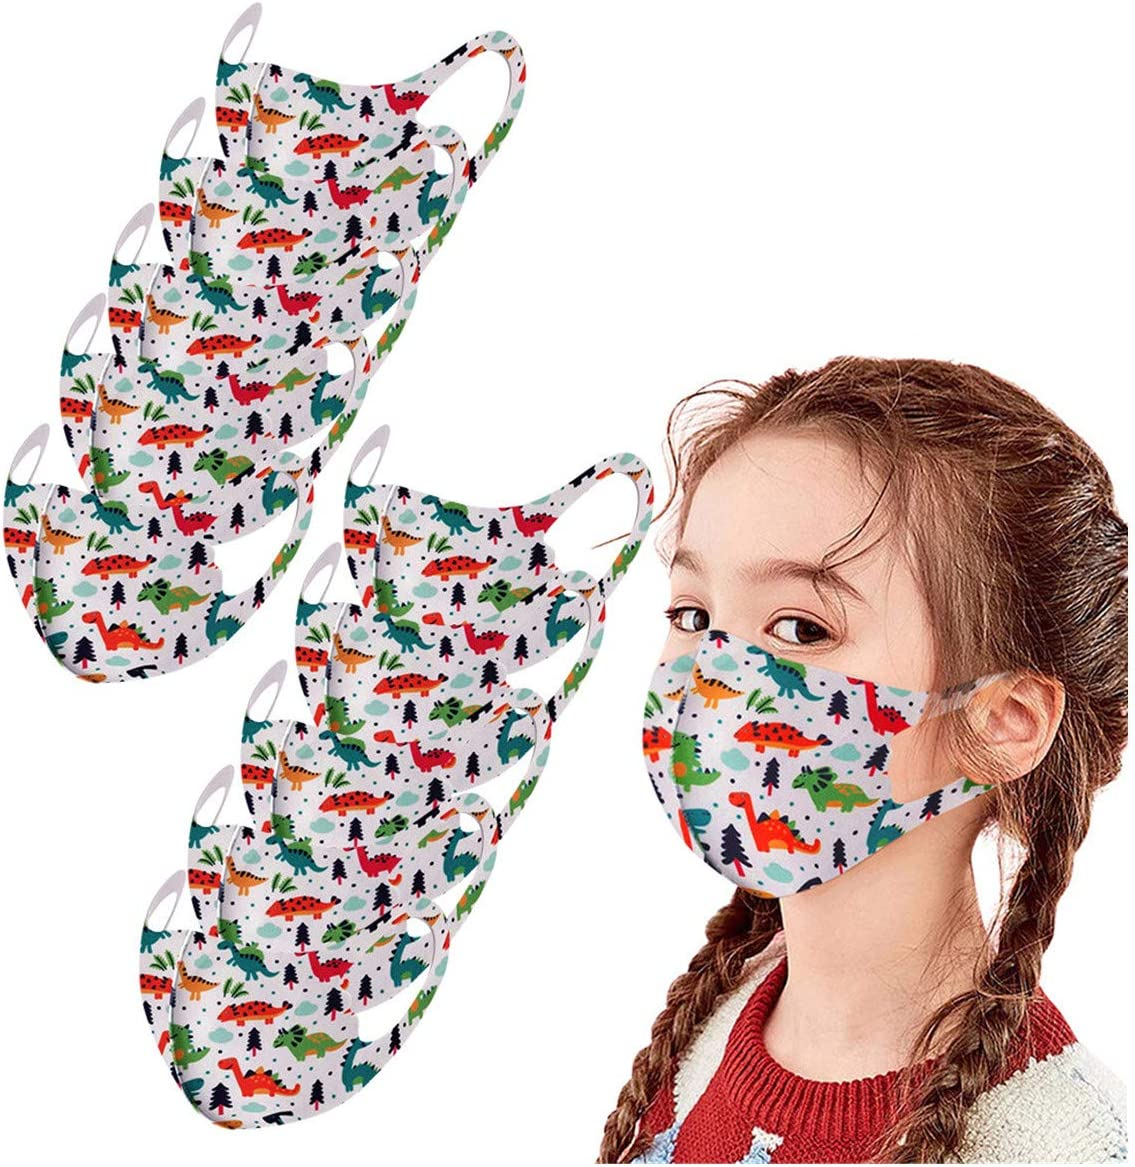 Thenxin Reusable Childrens Dustproof Face Protection Washable Breathable Face Protective 10PCS,A